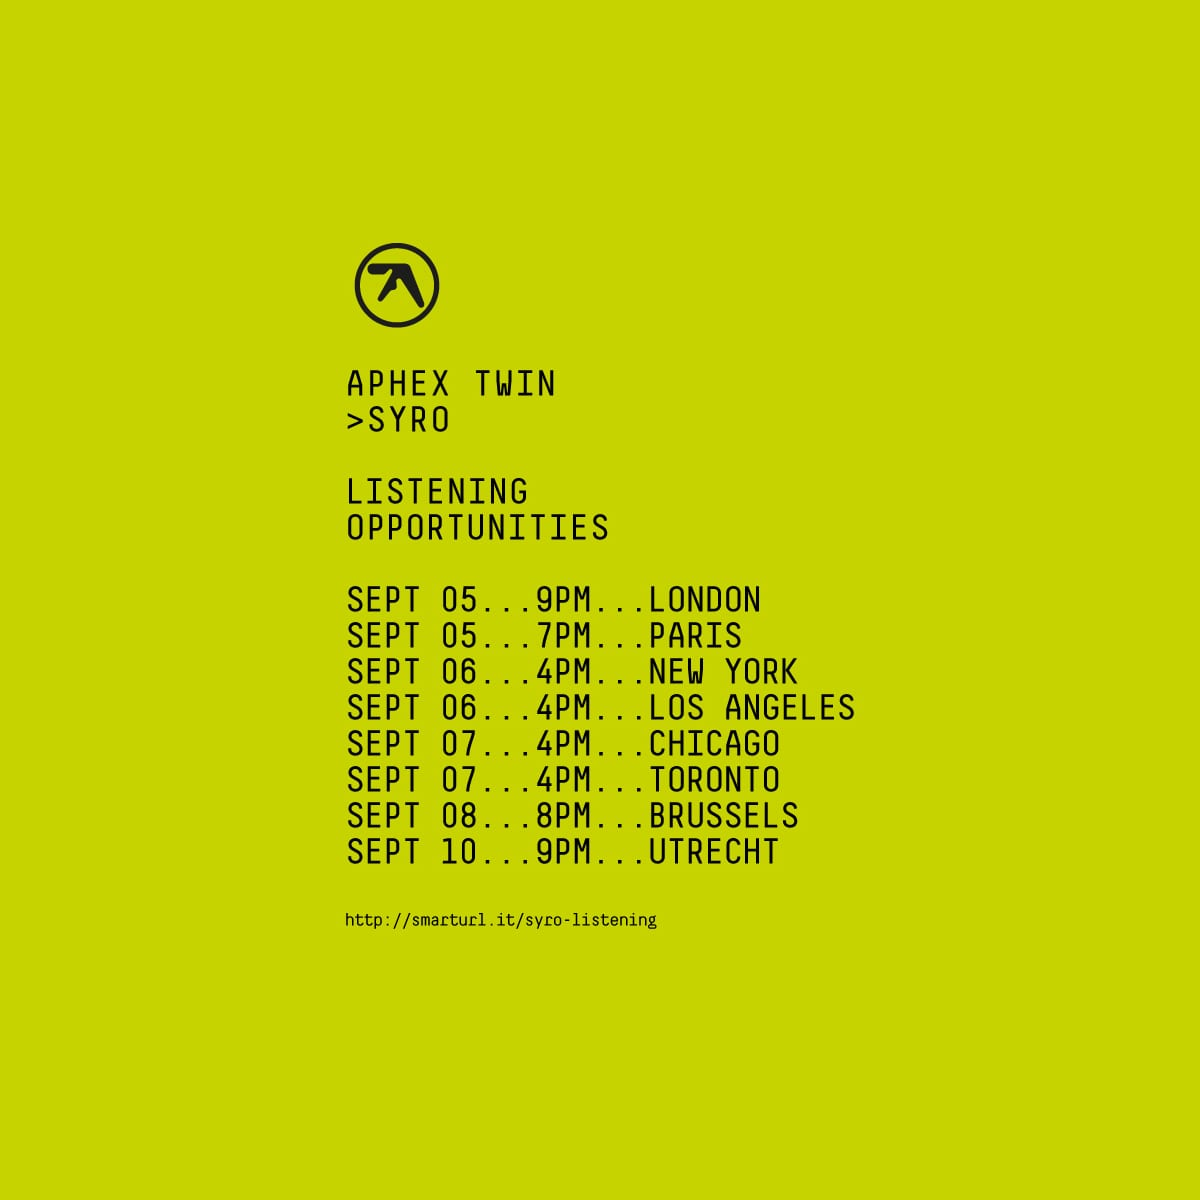 4Pm Cet To Pst aphex twin announces syro international listening events